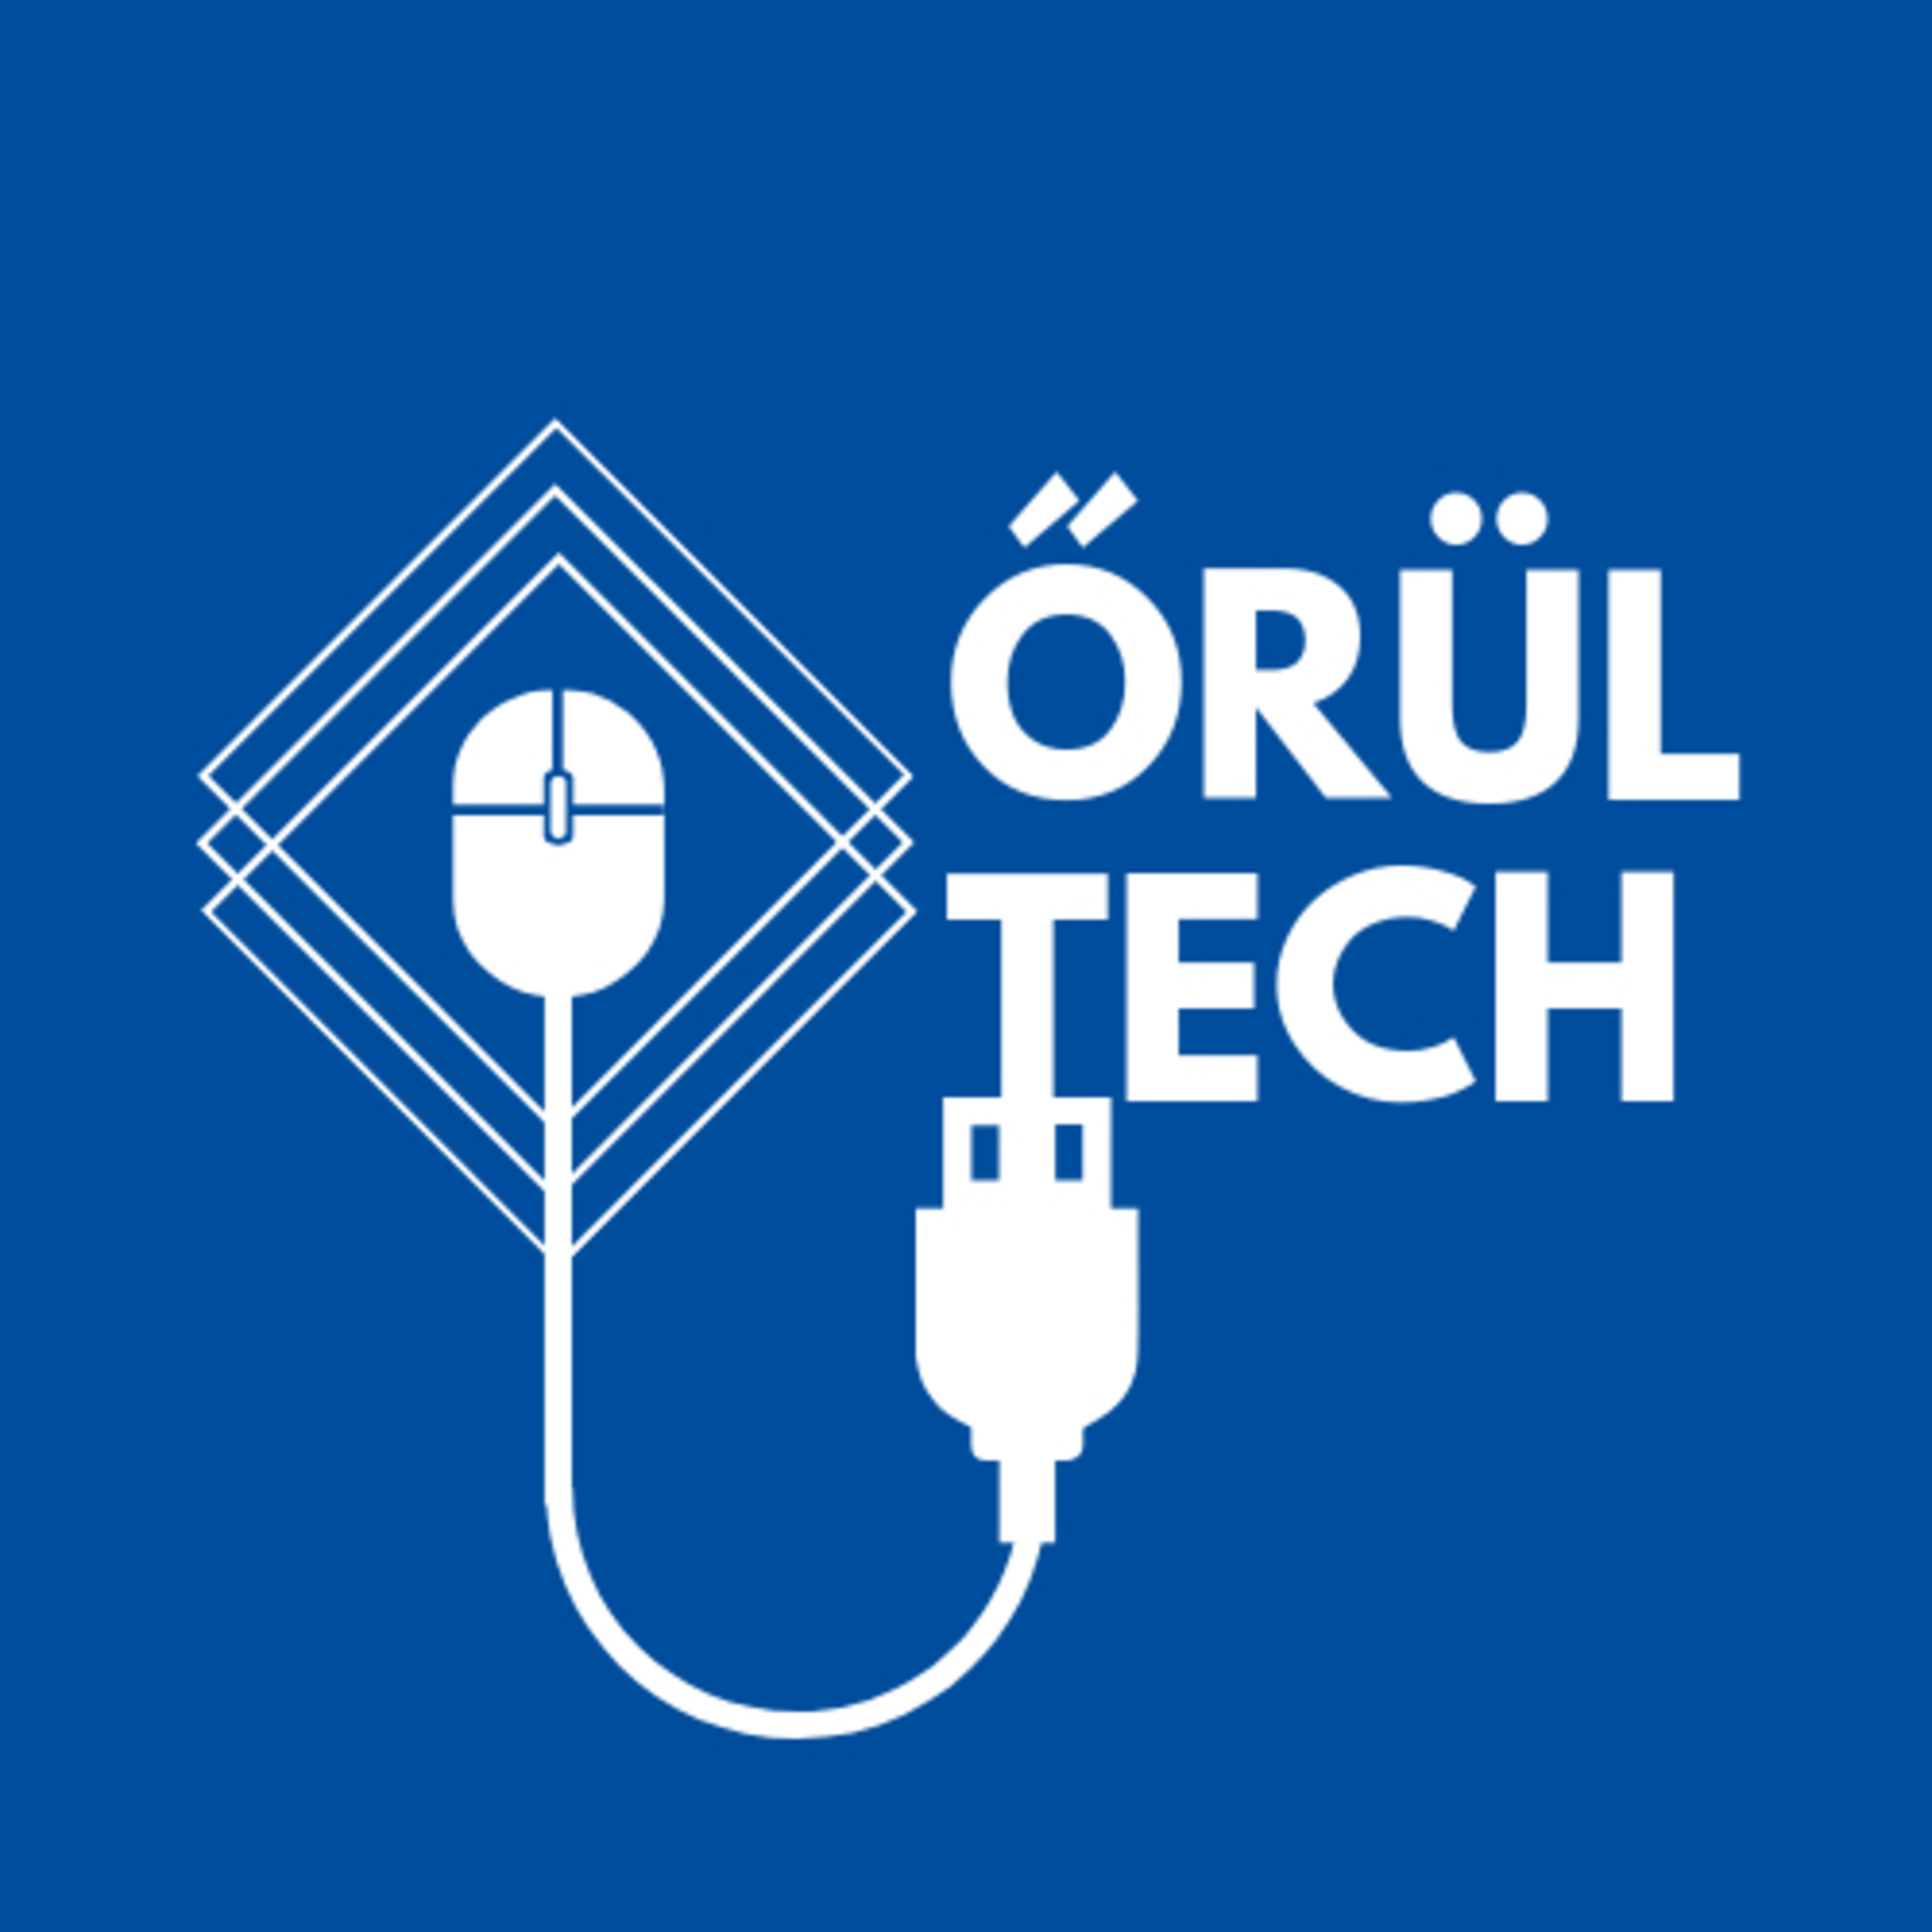 Őrültech S01 E19 - Alexa, play Despacito!